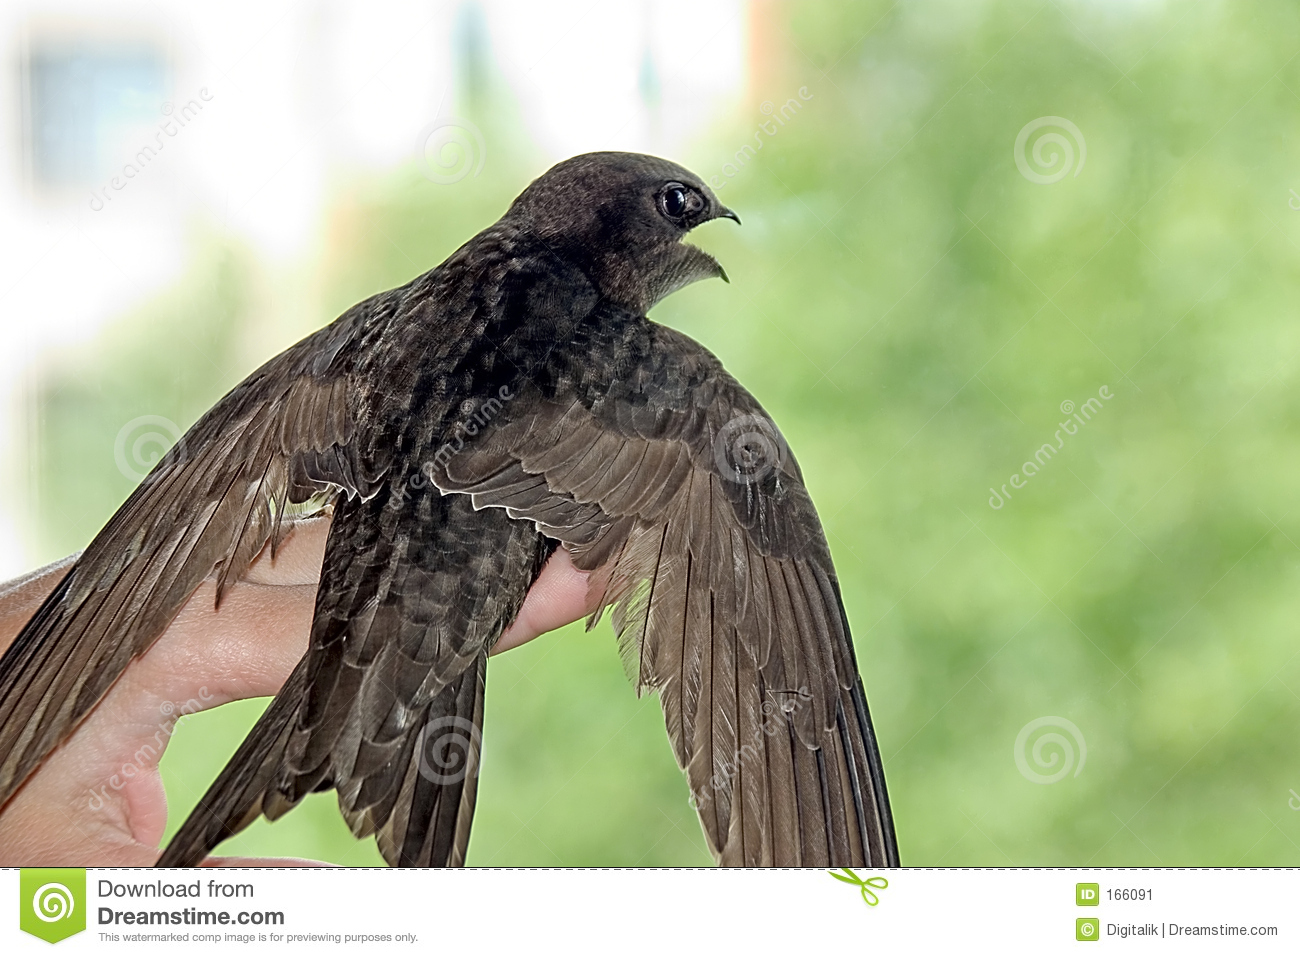 Swallow on hand